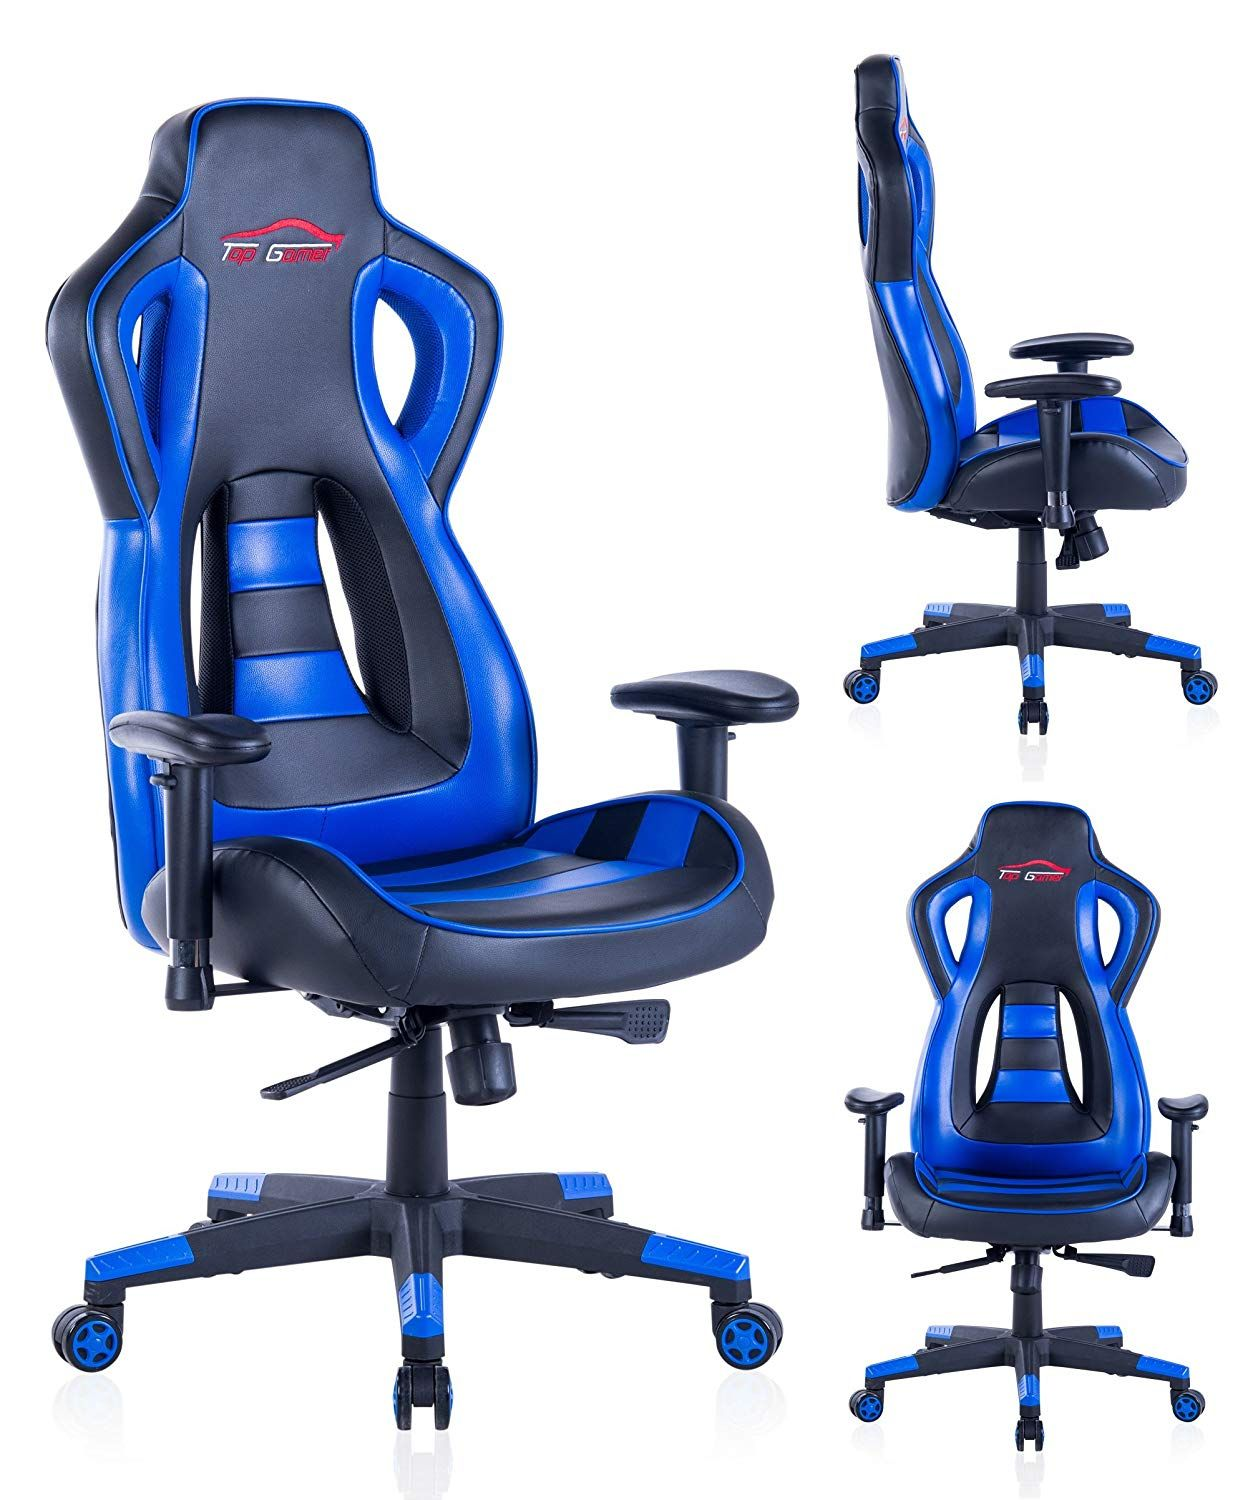 Top Gaming Chair Herman Miller Germany Gamer Pc Computer Game Chairs For Video Blue 02 Only 9 Left In Stock Order Soon Price 109 99